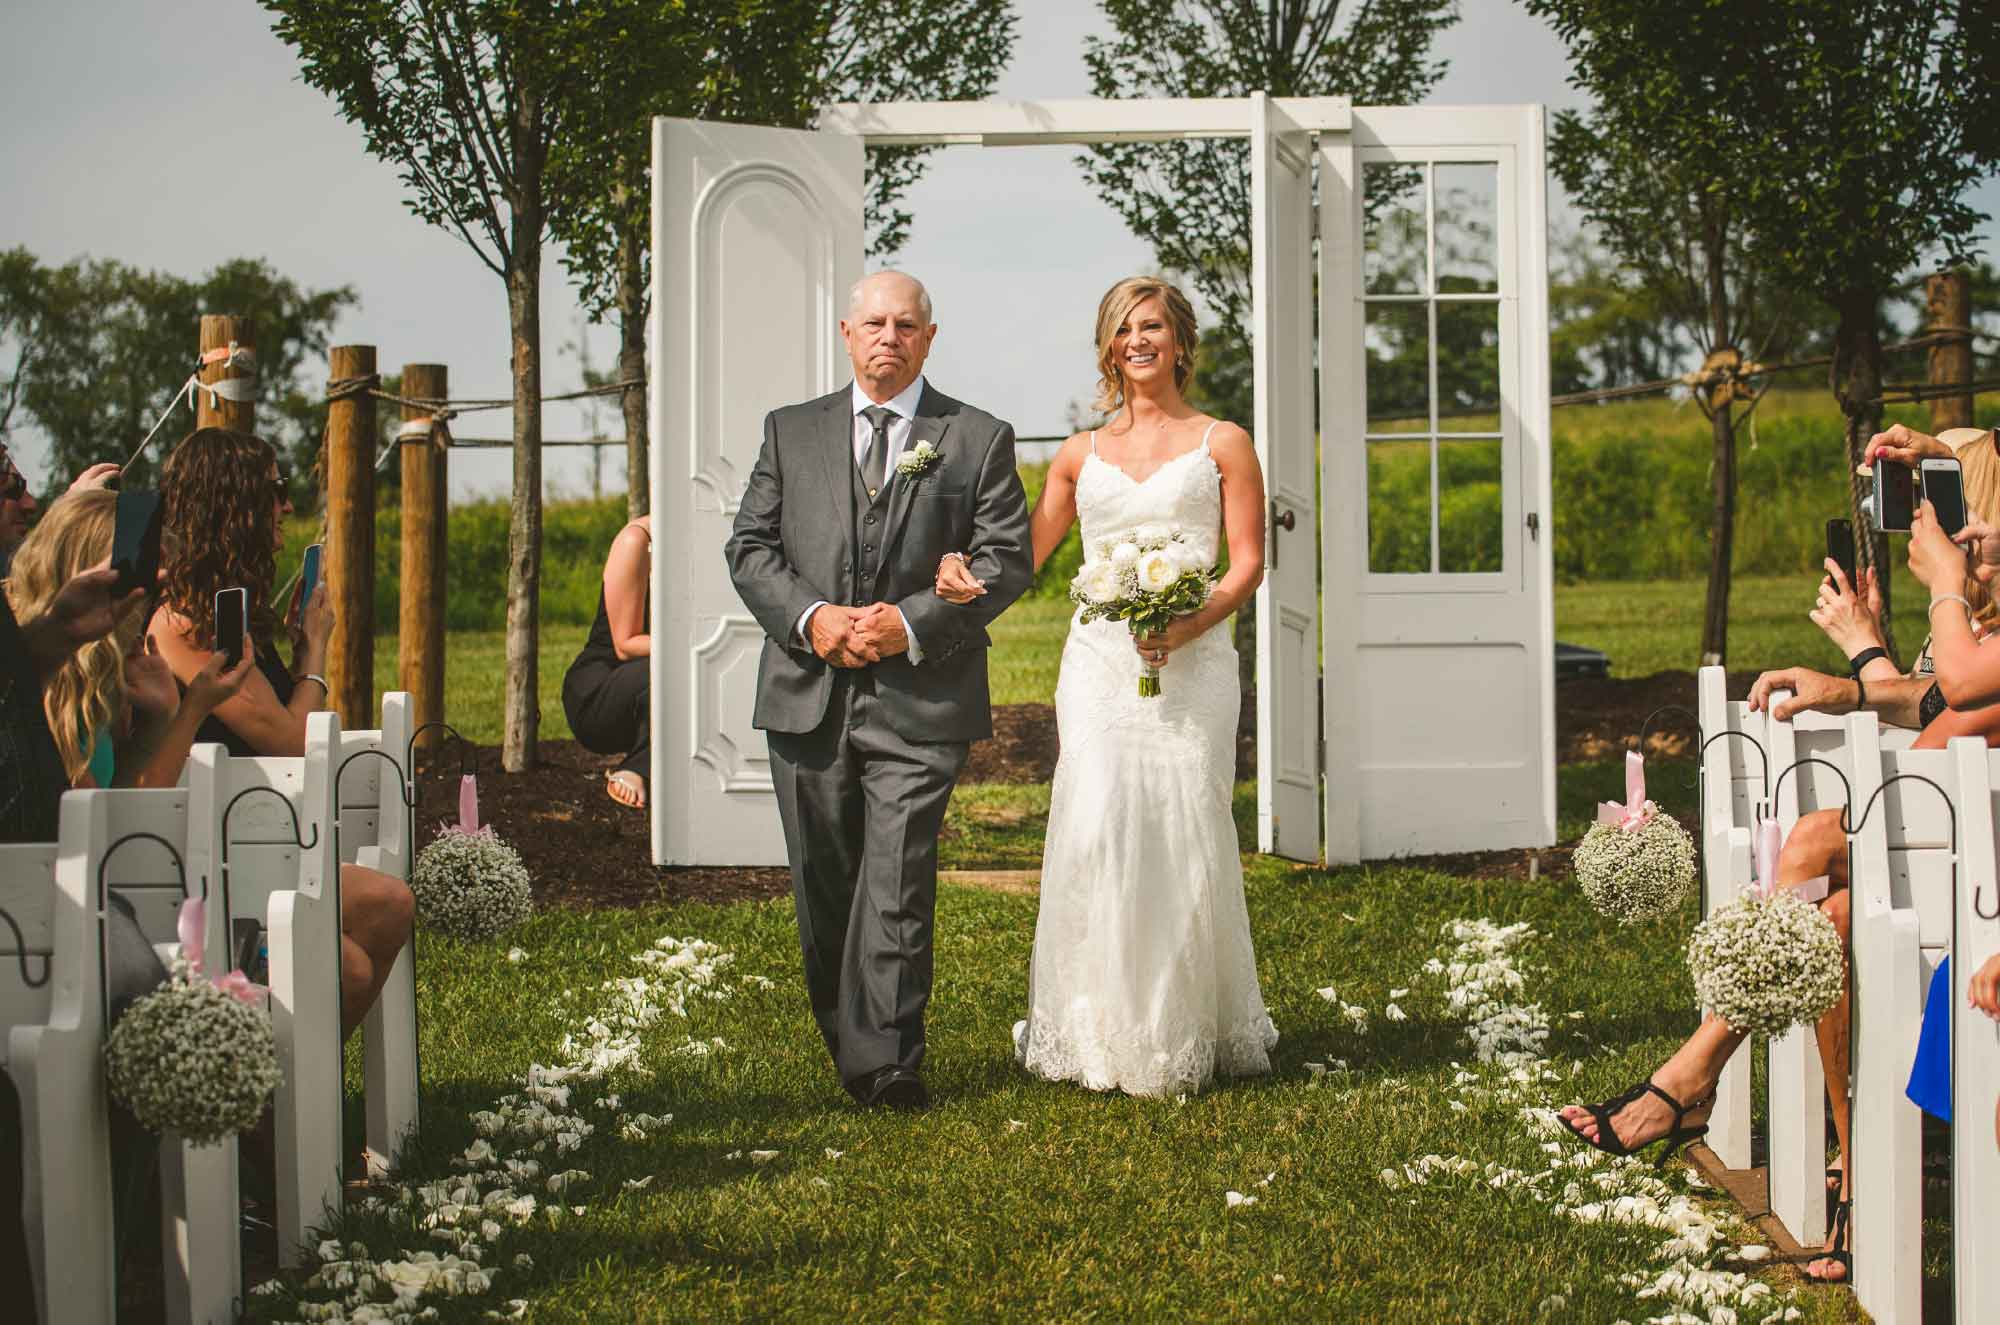 Bride and father walking down aisle at wedding ceremony